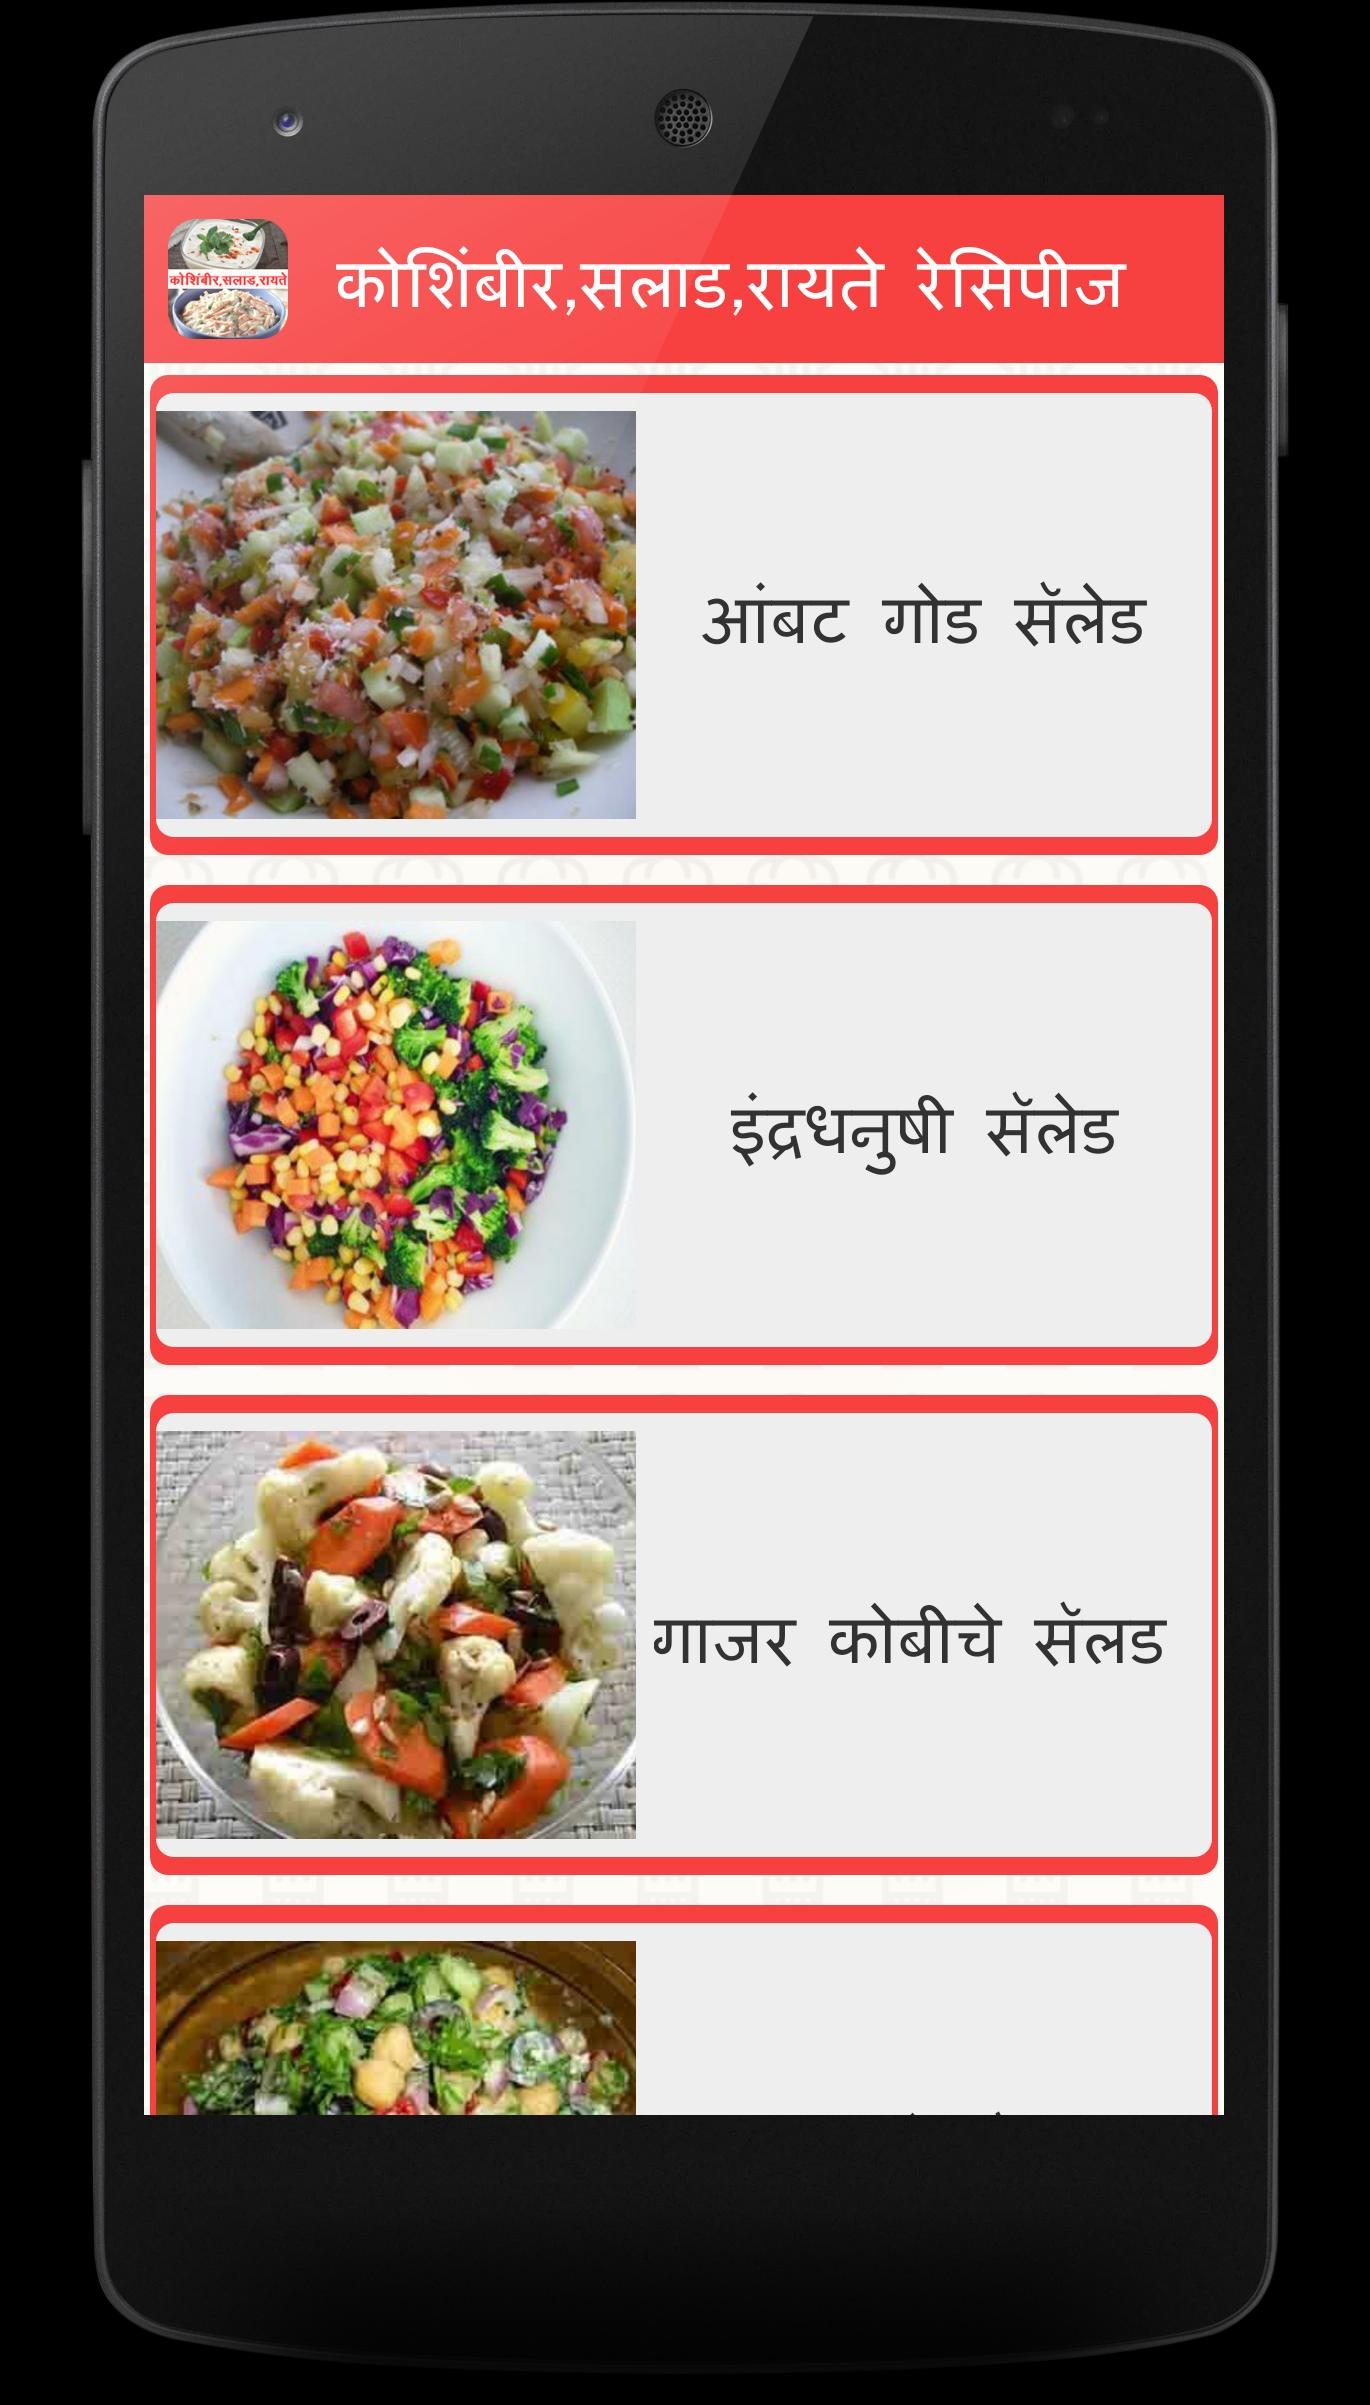 Salad Recipes In Marathi For Android Apk Download